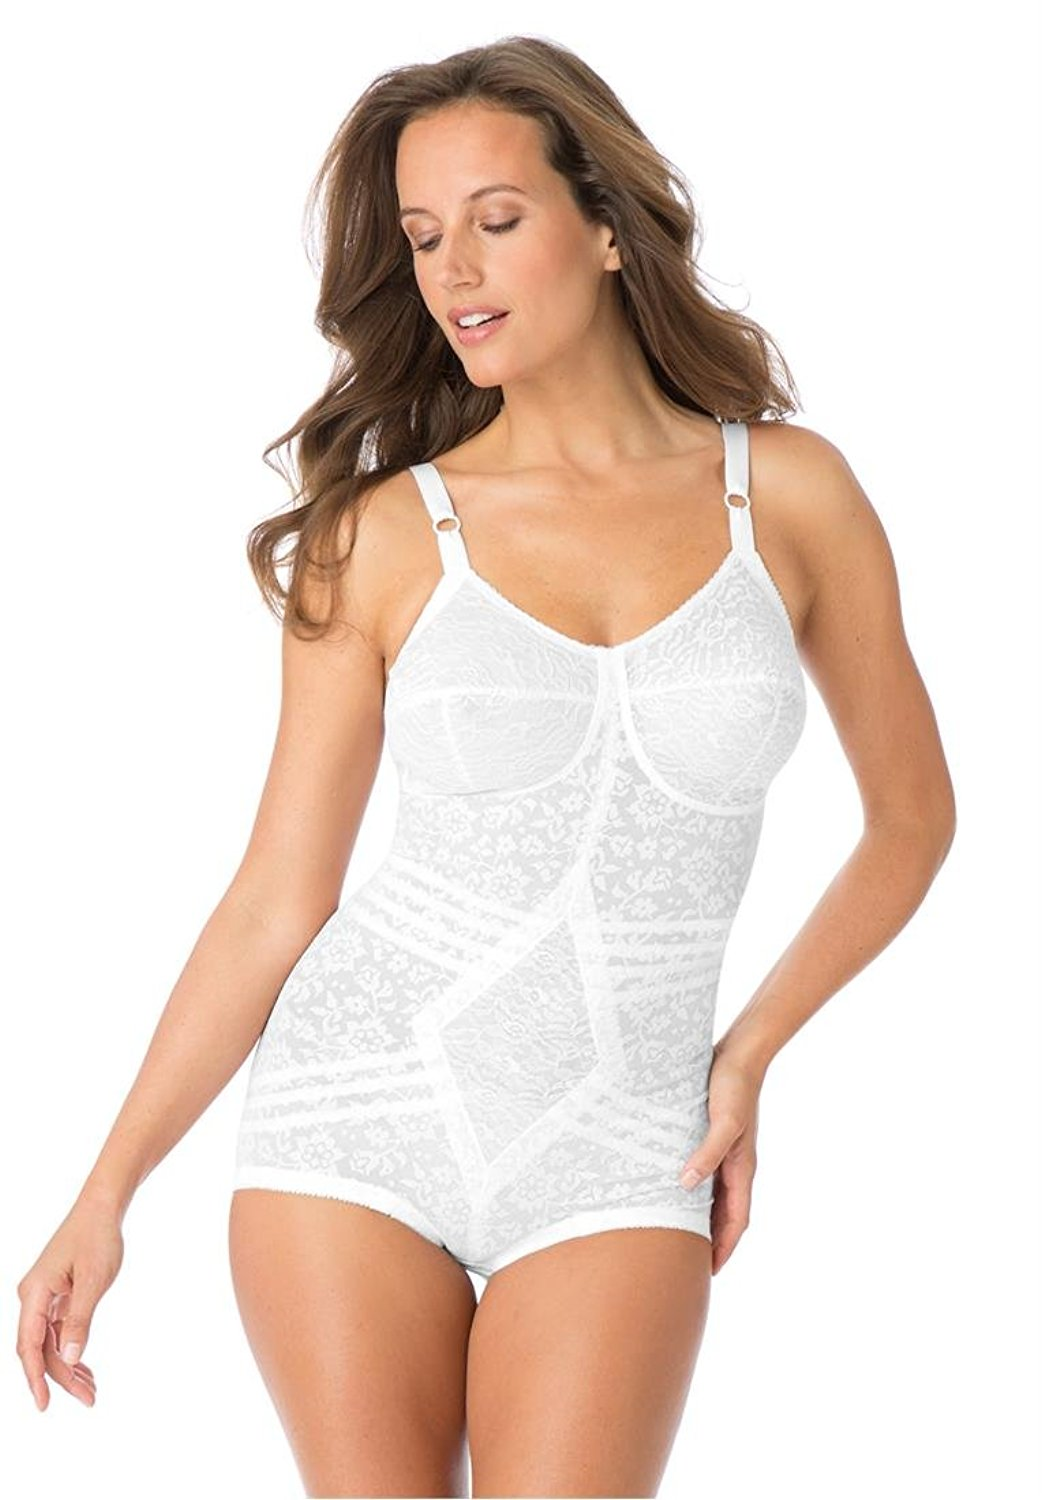 823e43d3778 Get Quotations · Rago Women s Plus Size All-In-One Extra-Firm Shaping Body  Briefer White